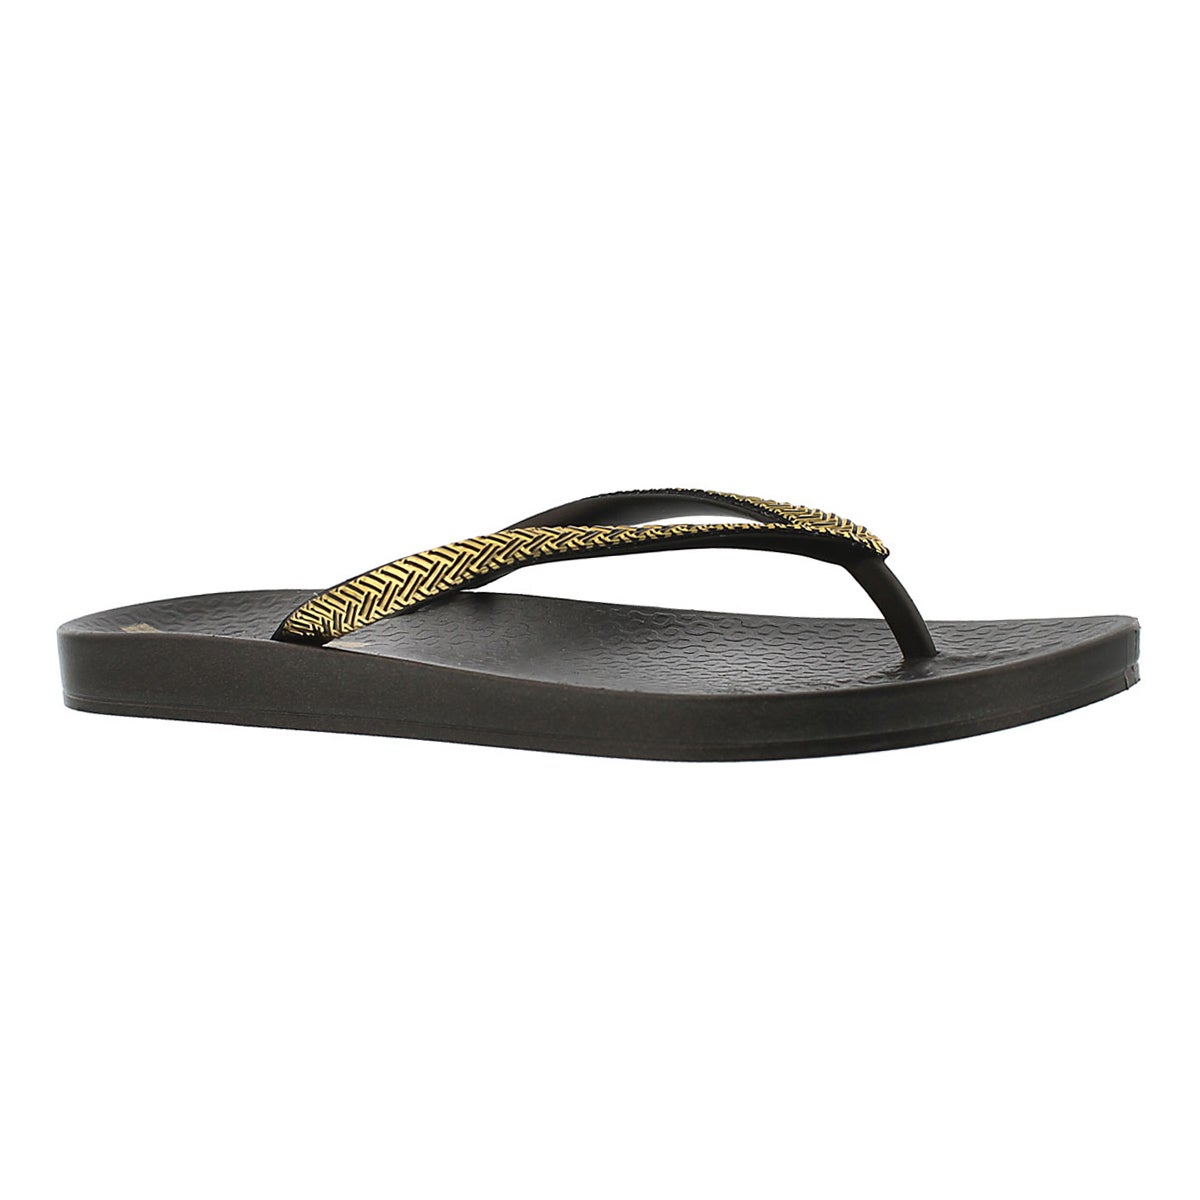 Women's MESH FEM black/gold flip flops